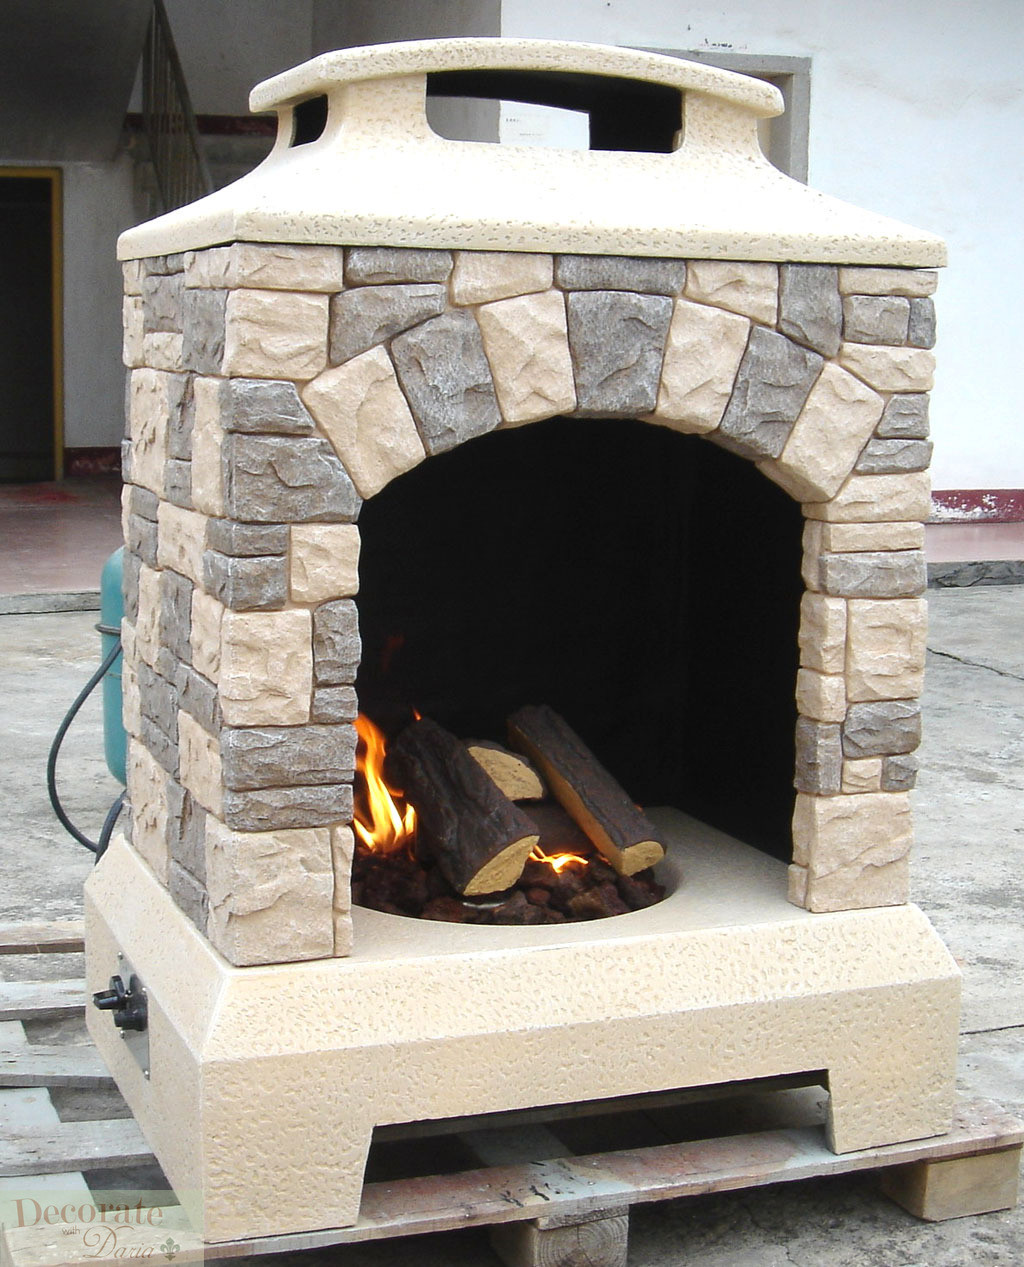 Fireplace Fire Pit  GAS FIREPLACE FIRE PIT OUTDOOR TUSCAN STYLE STONE w Logs